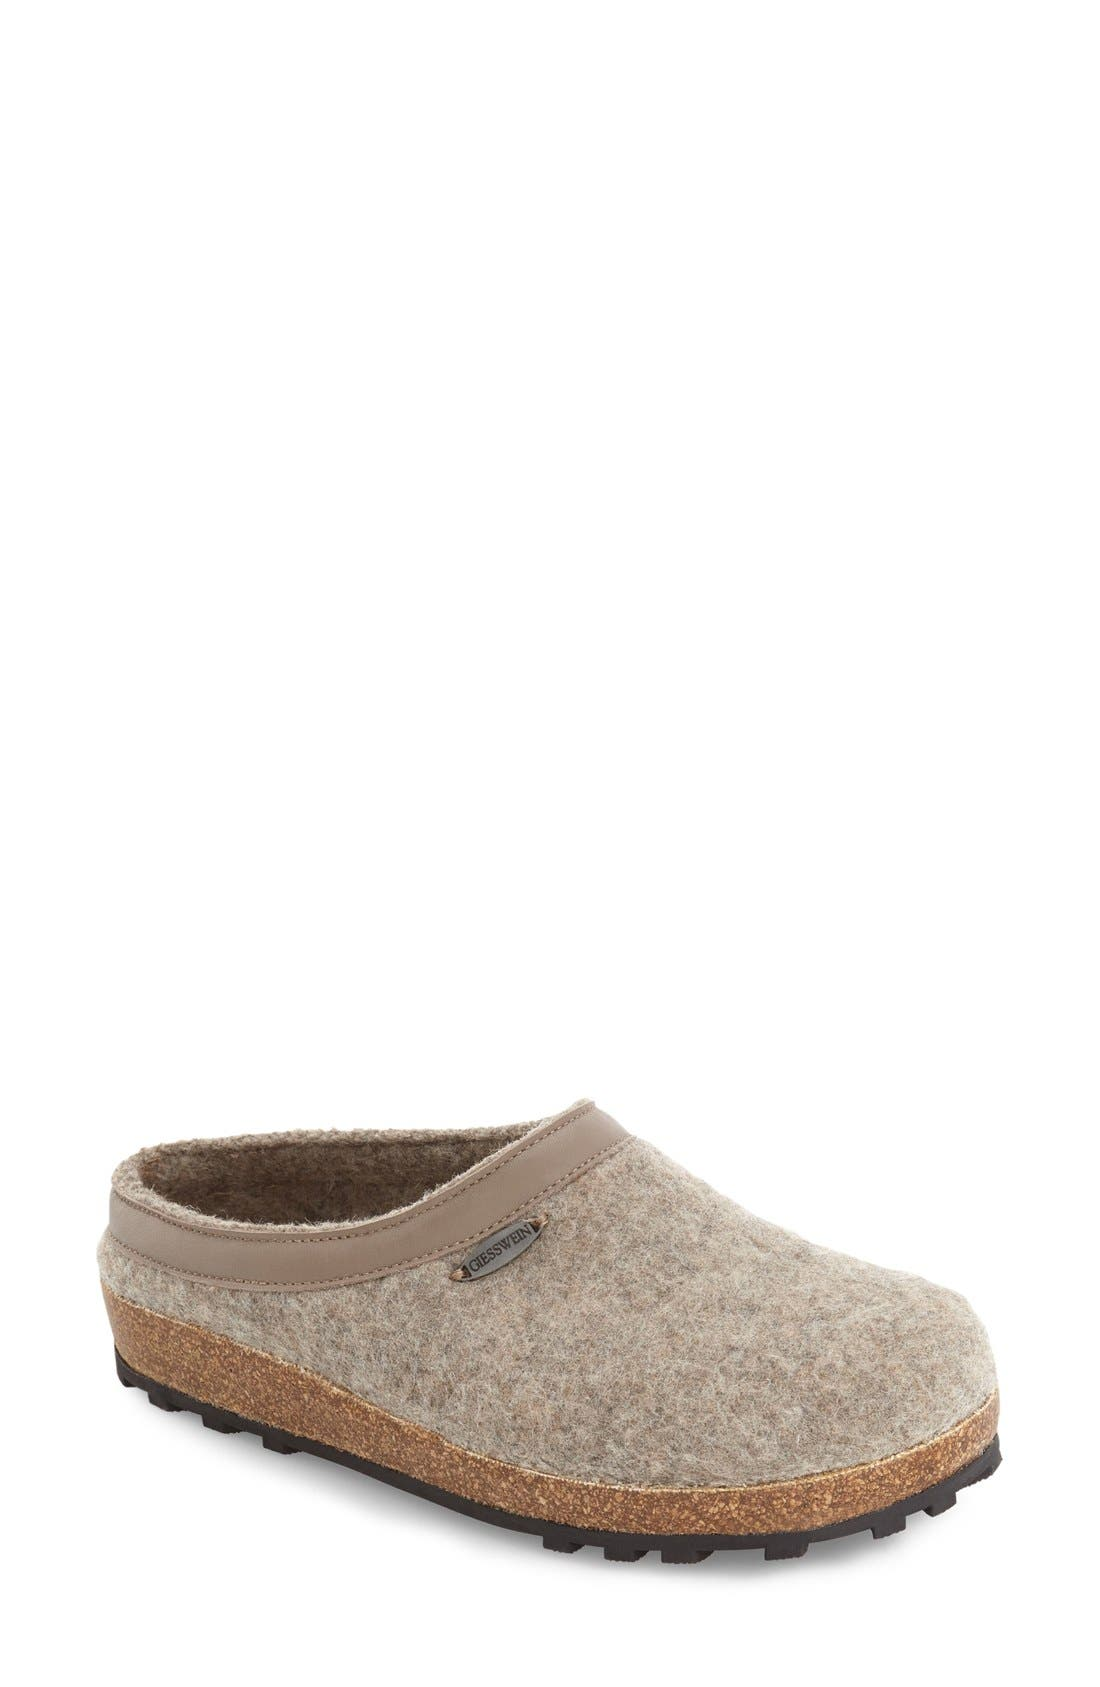 Giesswein Acadia Water Repellent Slipper (Women)